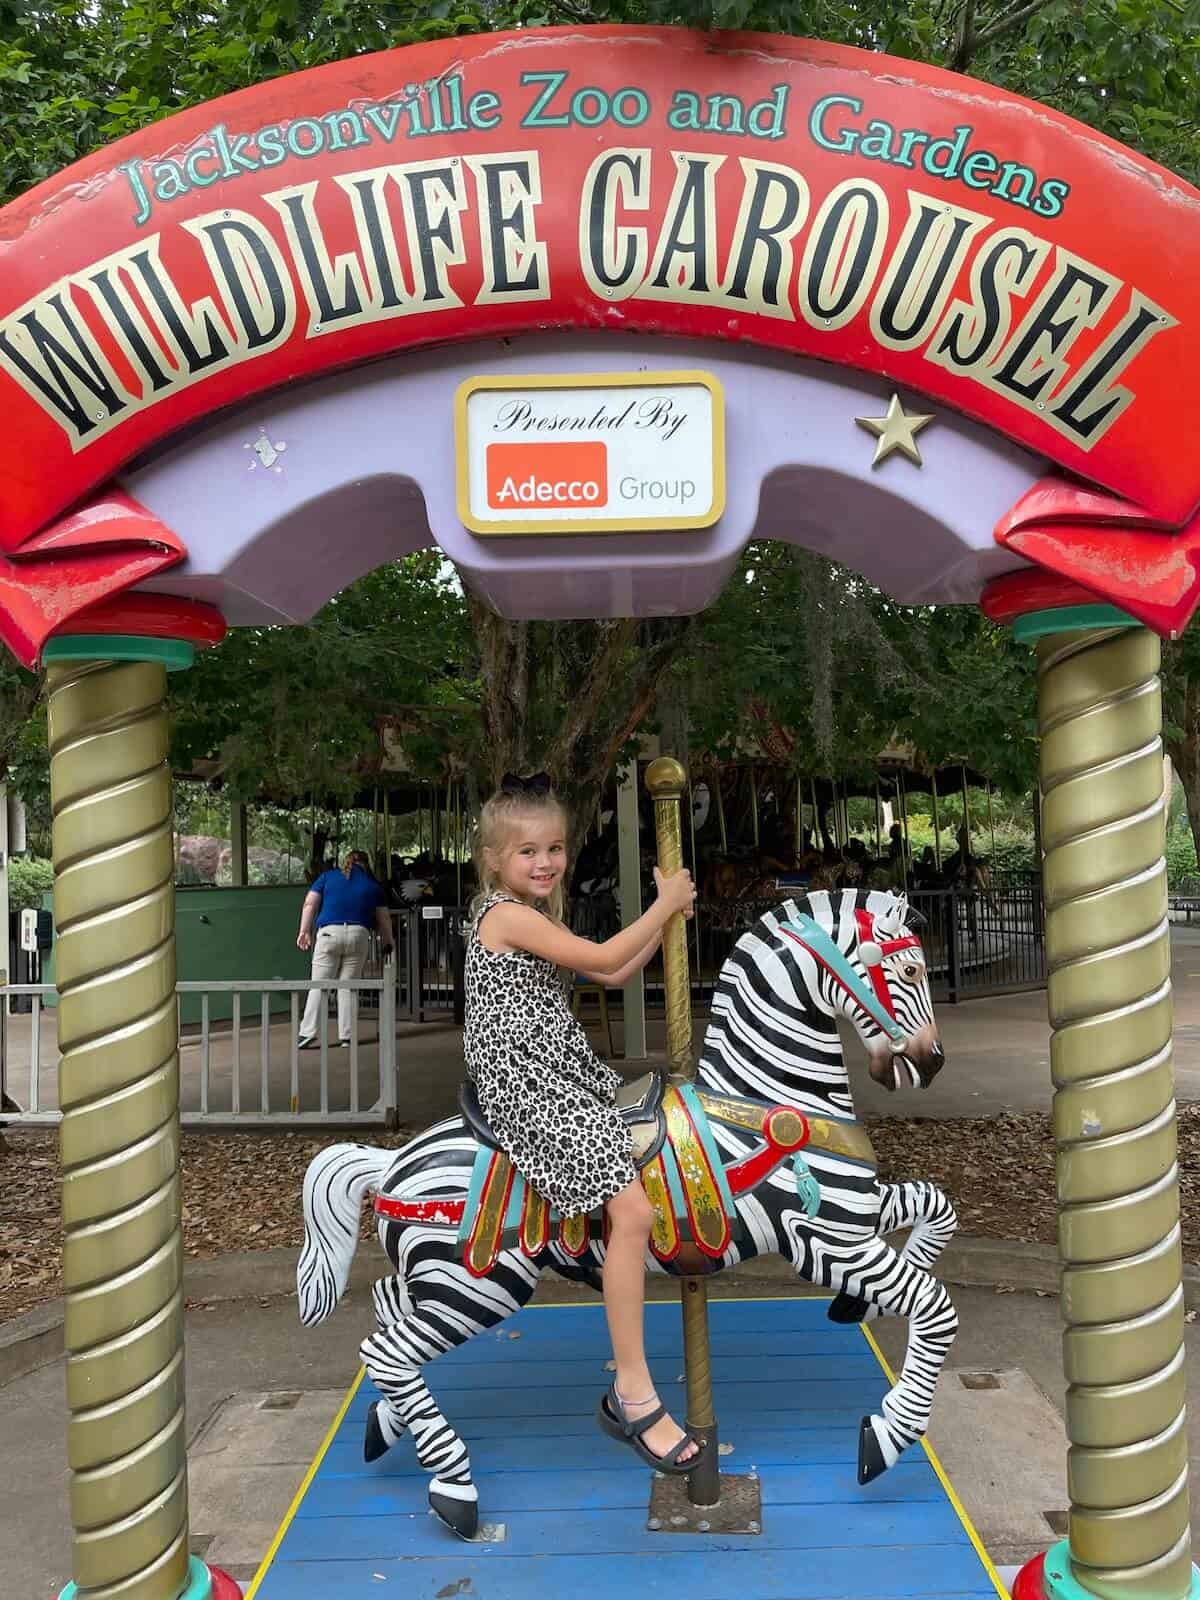 best zoos in florida visiting jacksonville zoo and gardens